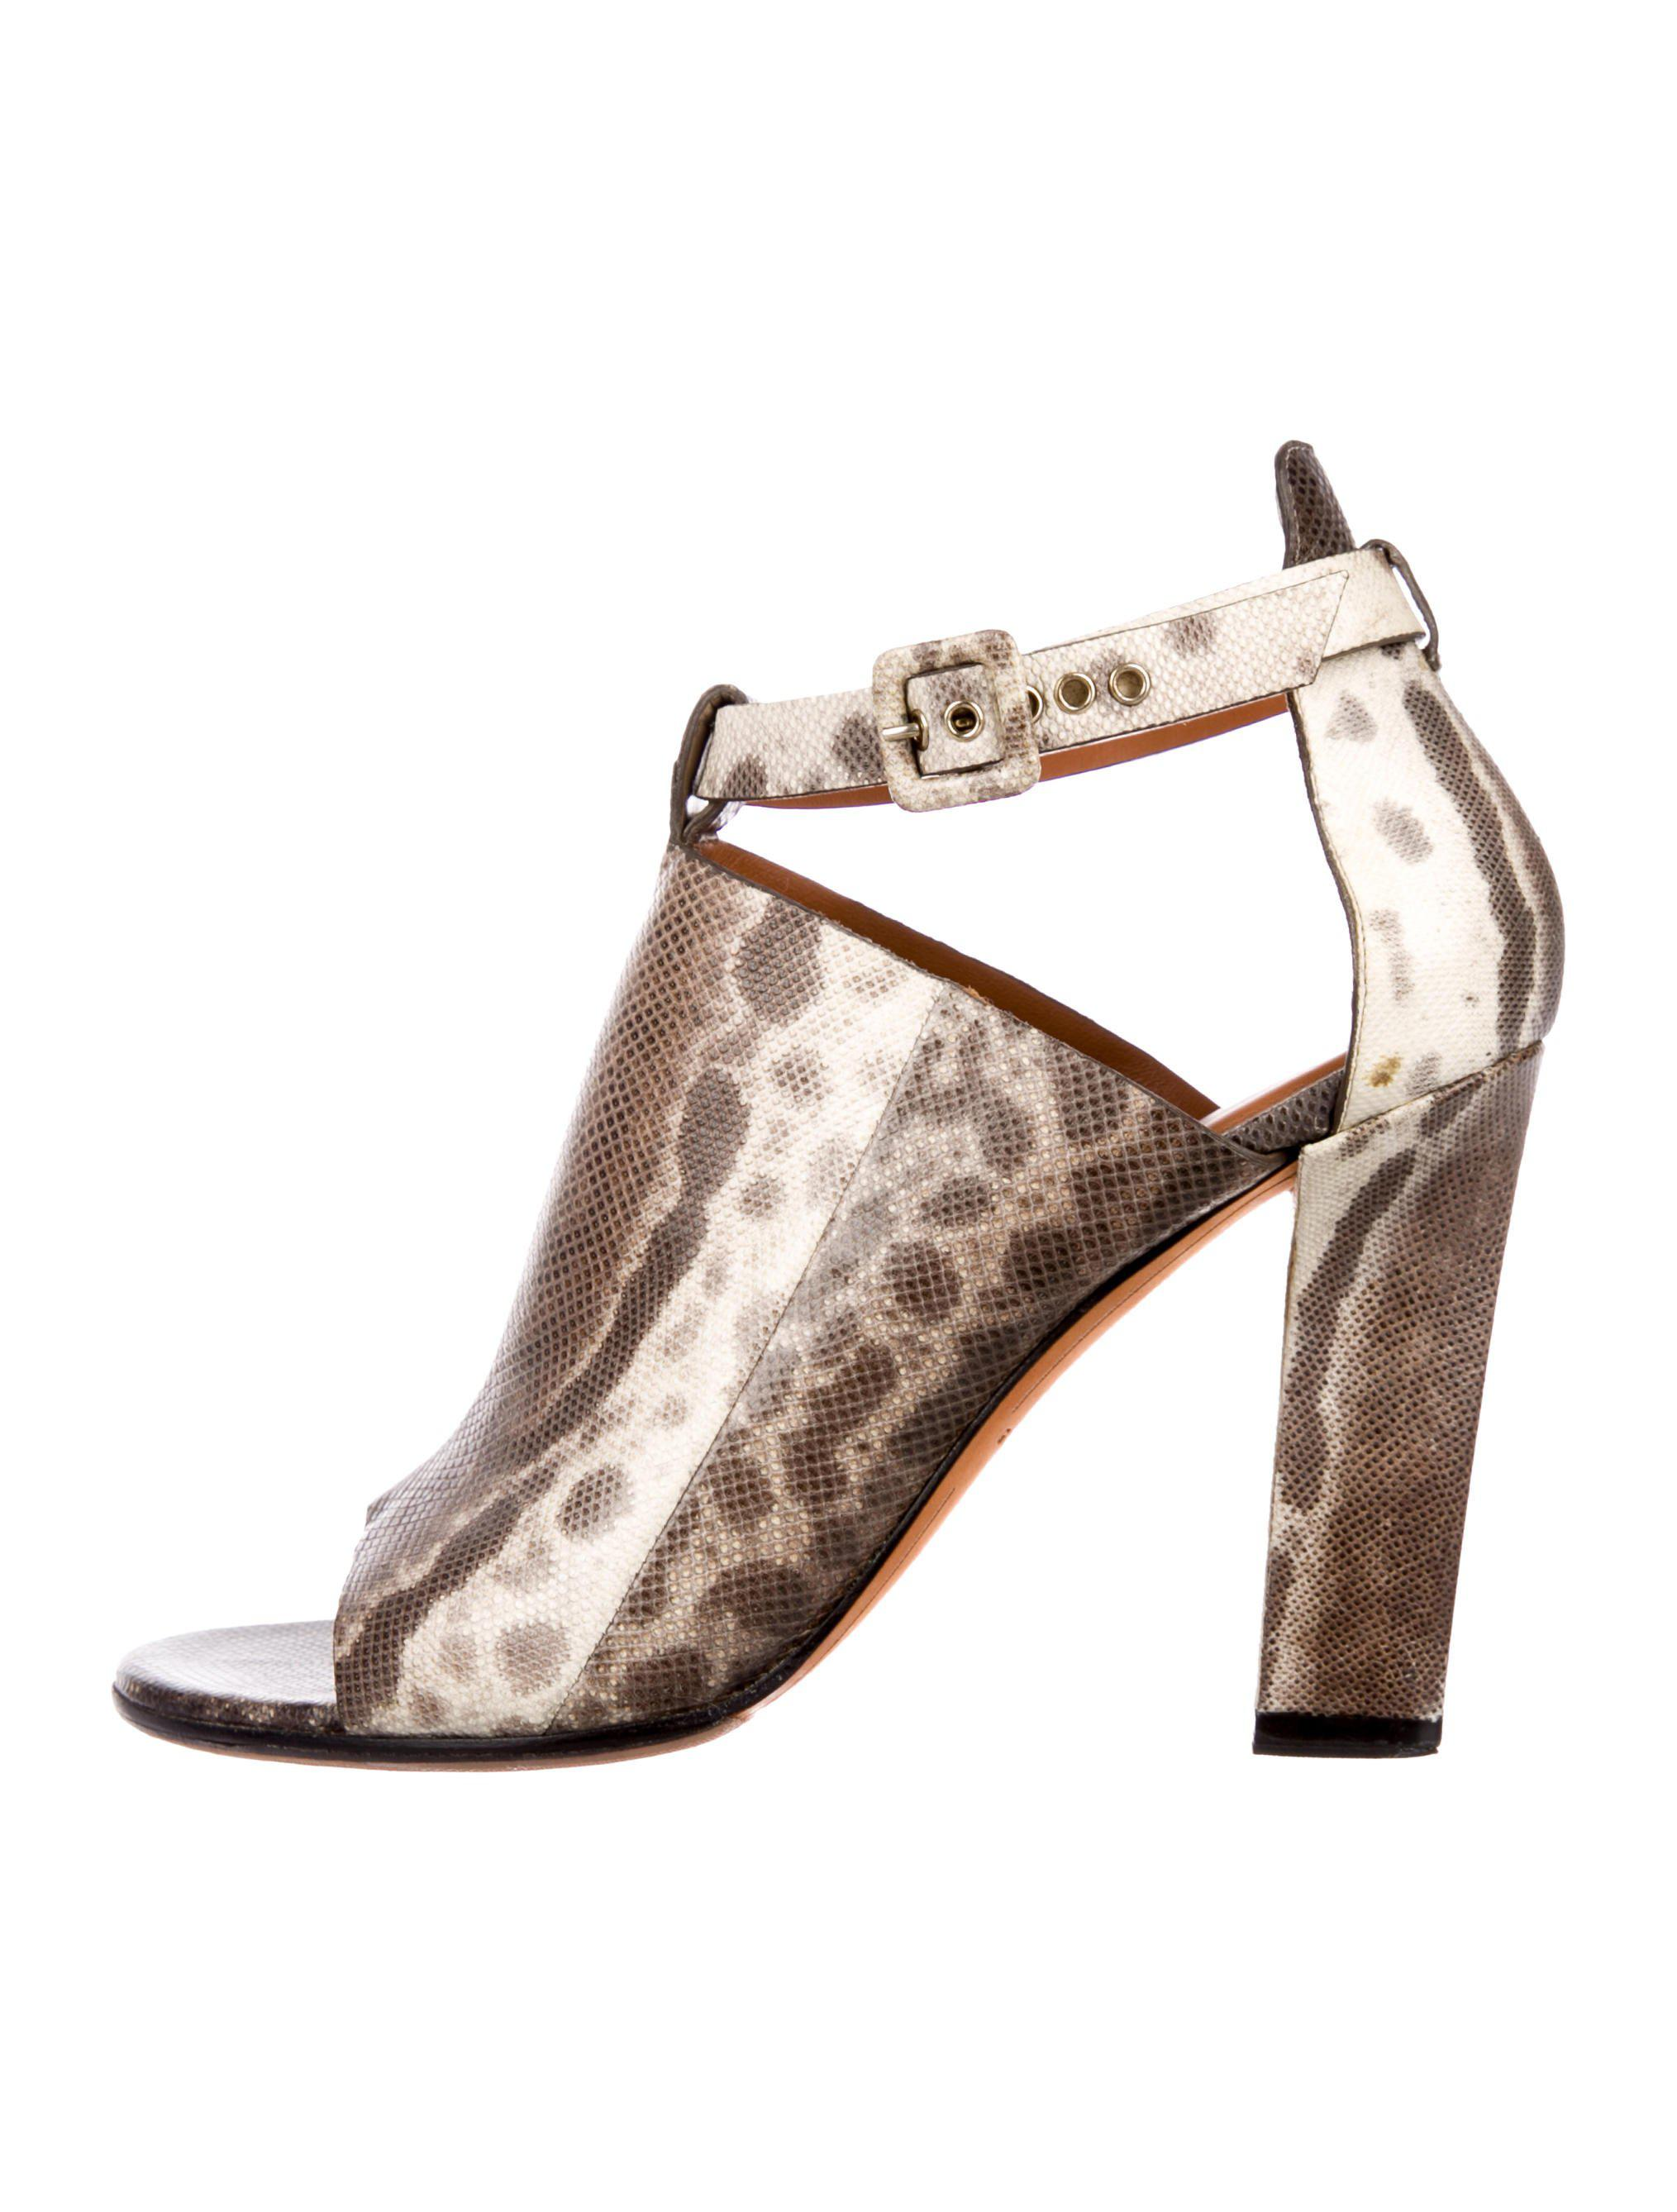 b50ffdfe955 Lyst - Givenchy Lizard Ankle-strap Sandals in Brown